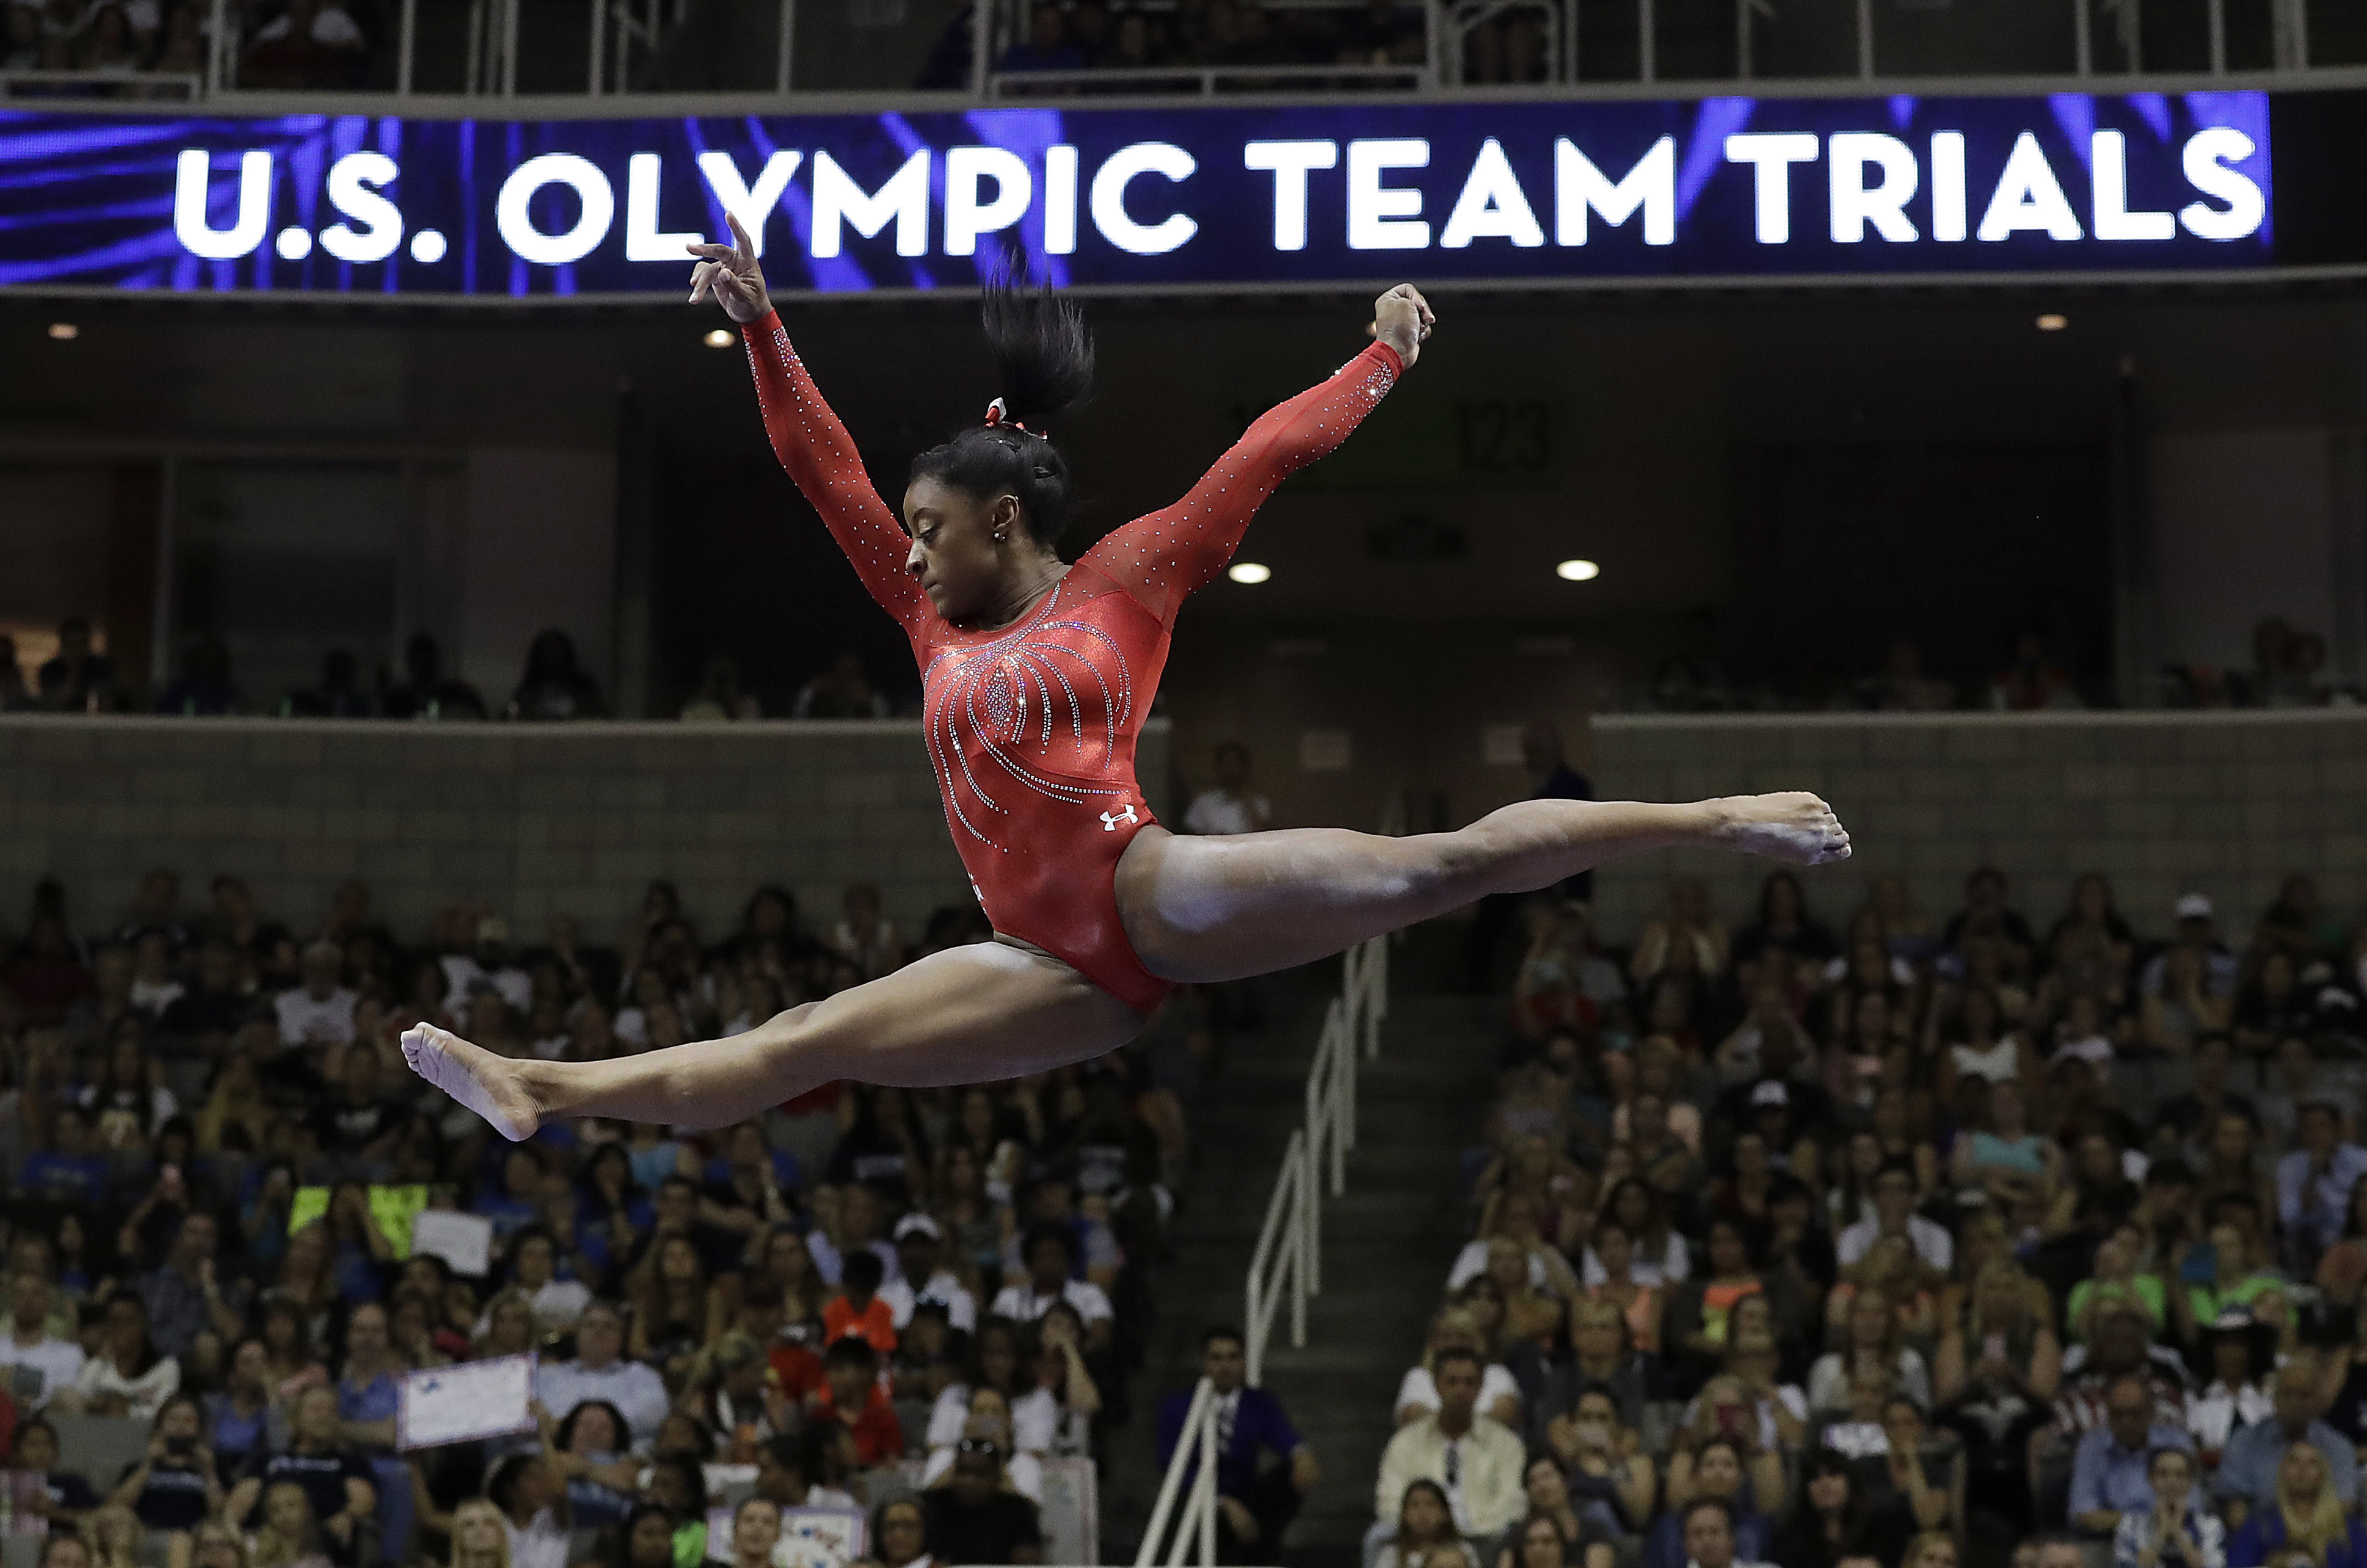 FILE - In this Sunday, July 10, 2016, file photo, Simone Biles competes on the balance beam during the women's U.S. Olympic gymnastics trials in San Jose, Calif. Biles, who won four gold medals at the 2016 Summer Games, says she is just testing the waters